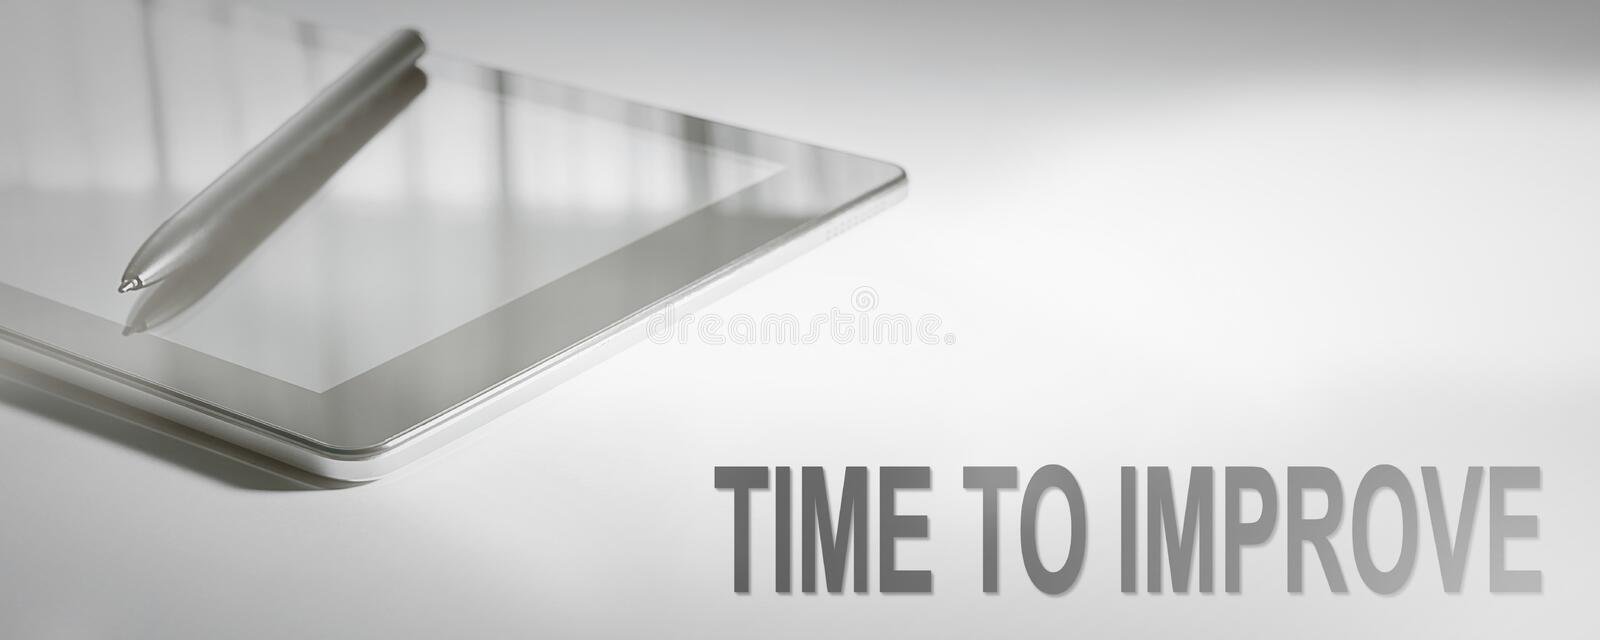 TIME TO IMPROVE Business Concept Digital Technology. Graphic Concept stock photography